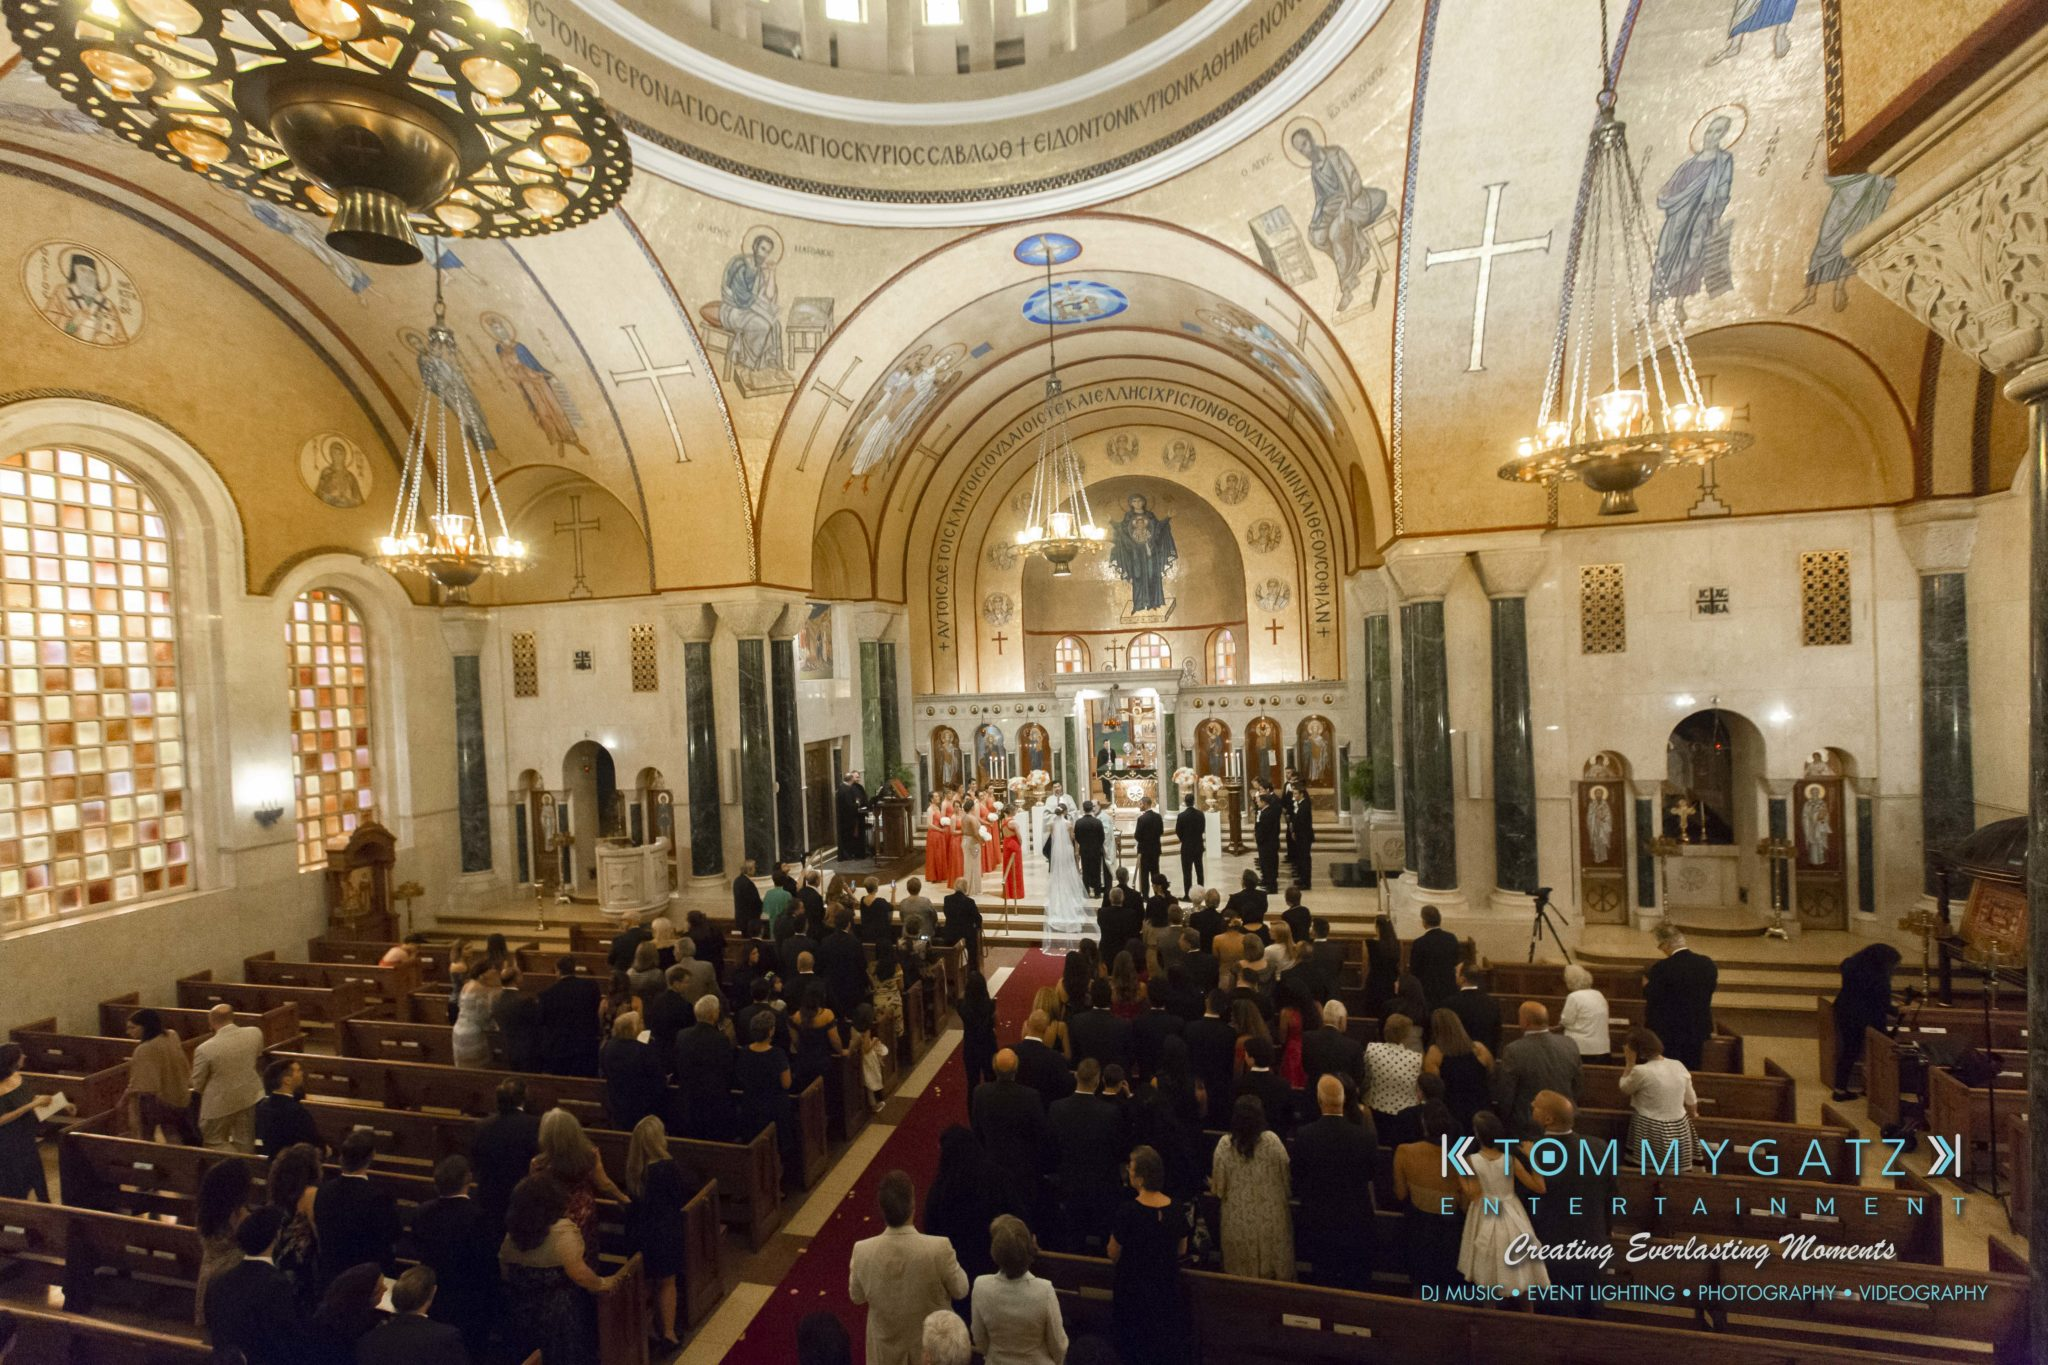 Urania & Aristidis' Wedding Ceremony at St. Sophia Greek Orthodox Cathedral in Washington, D.C. and Wedding Reception at Woodmont Country Club in Rockville, MD